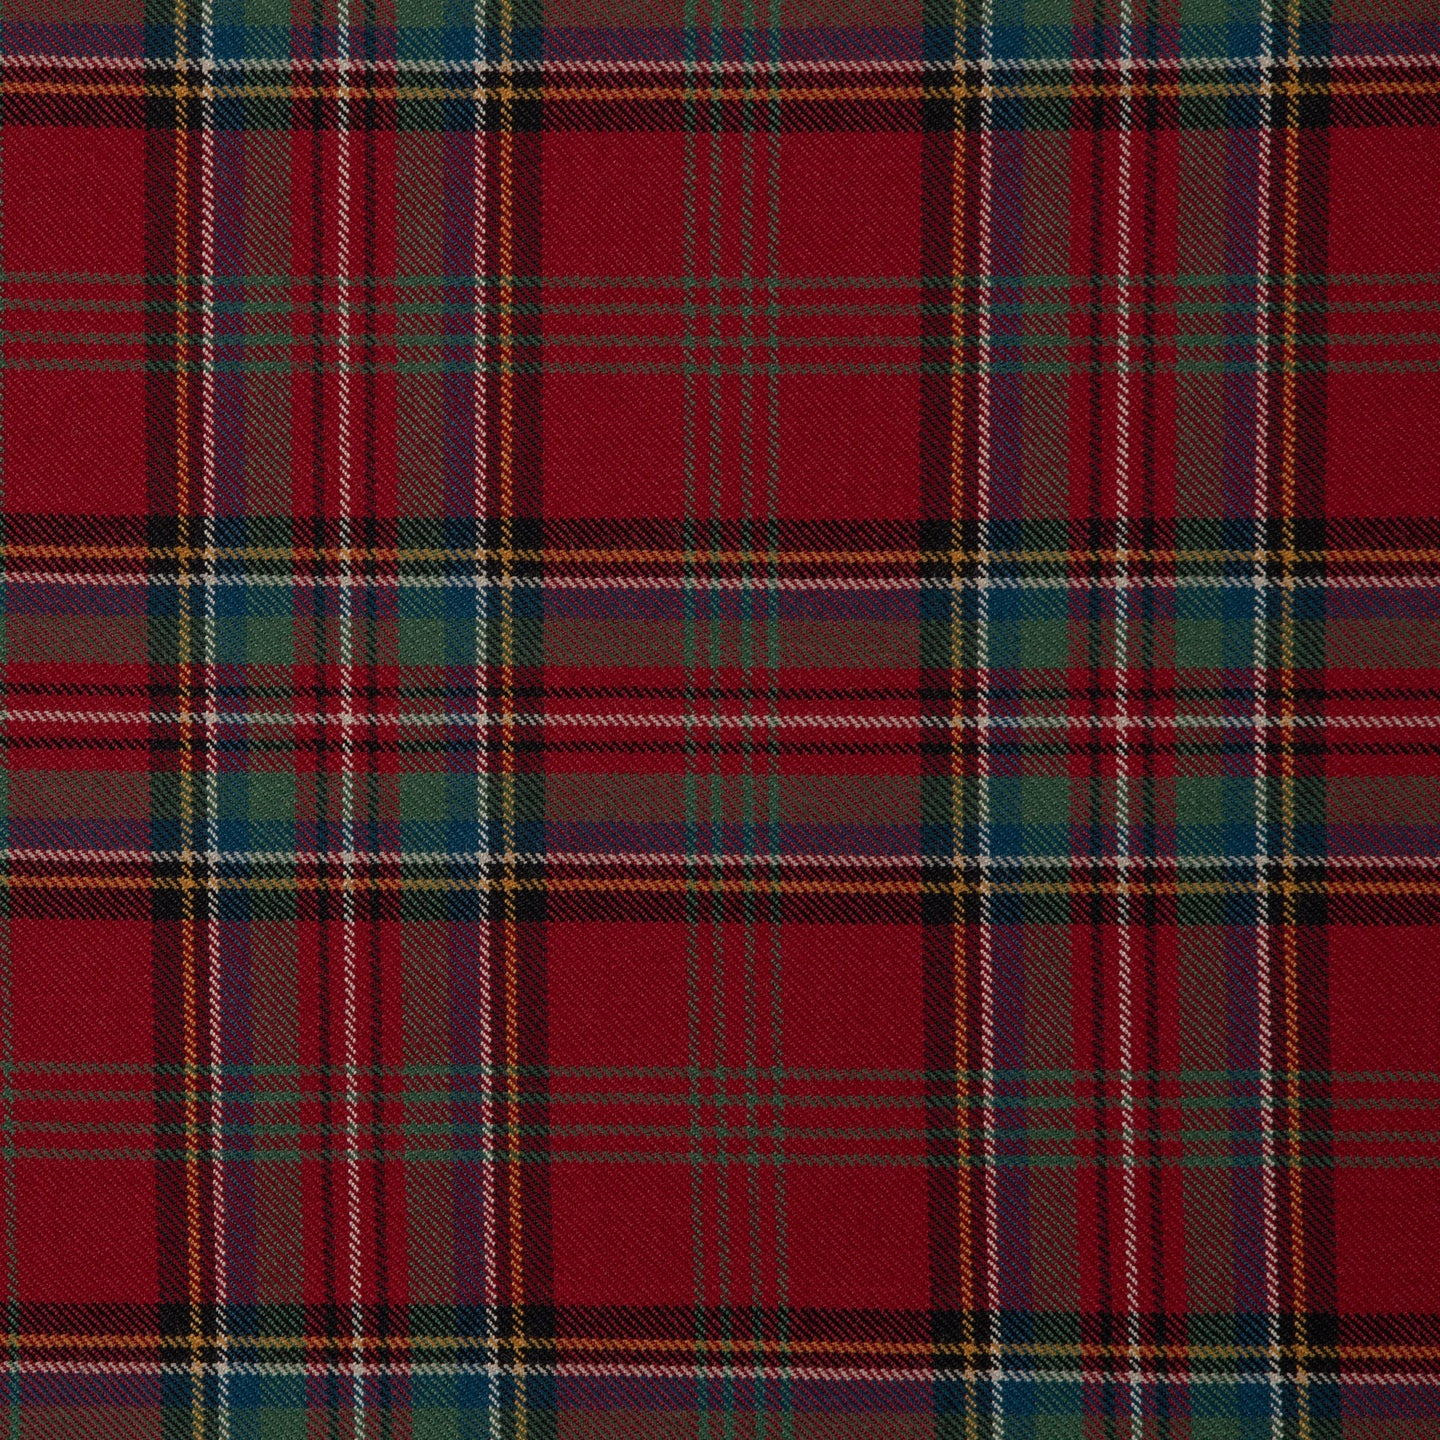 Stewart of Appin '1842 Variant' Muted (House of Edgar)